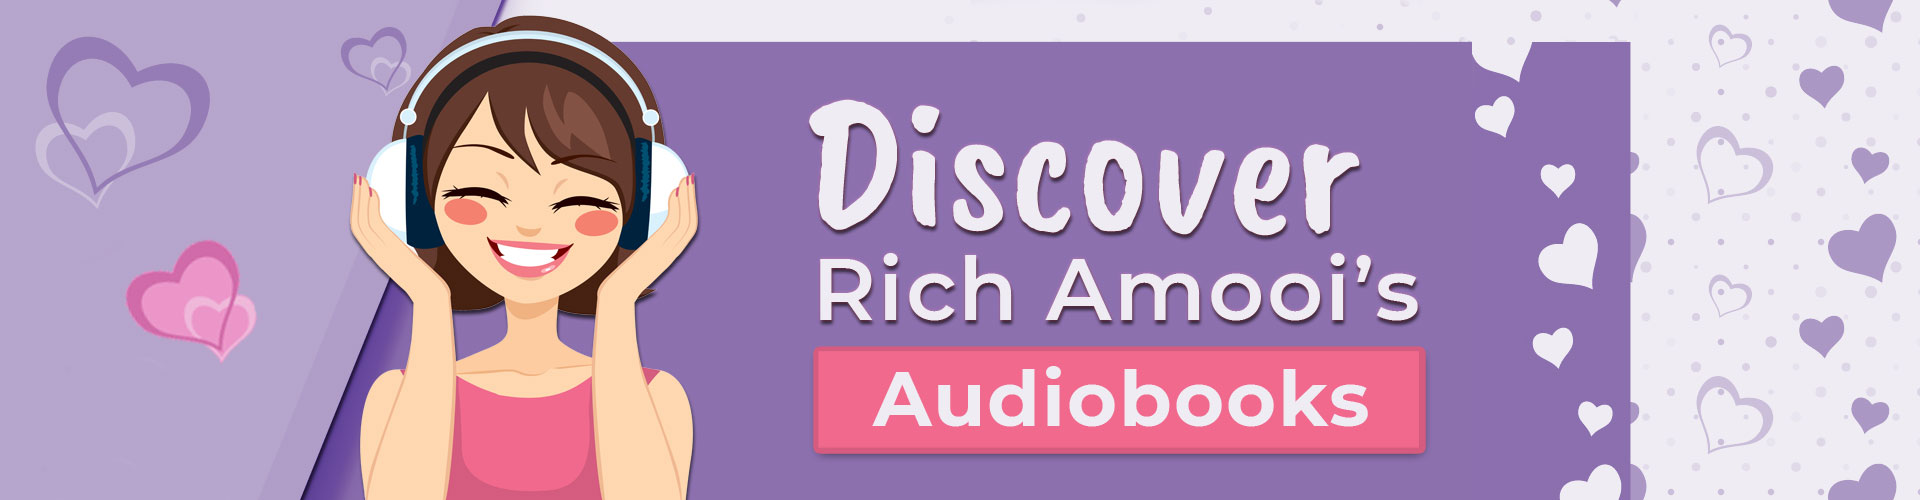 Discover Rich Amooi's Audiobooks